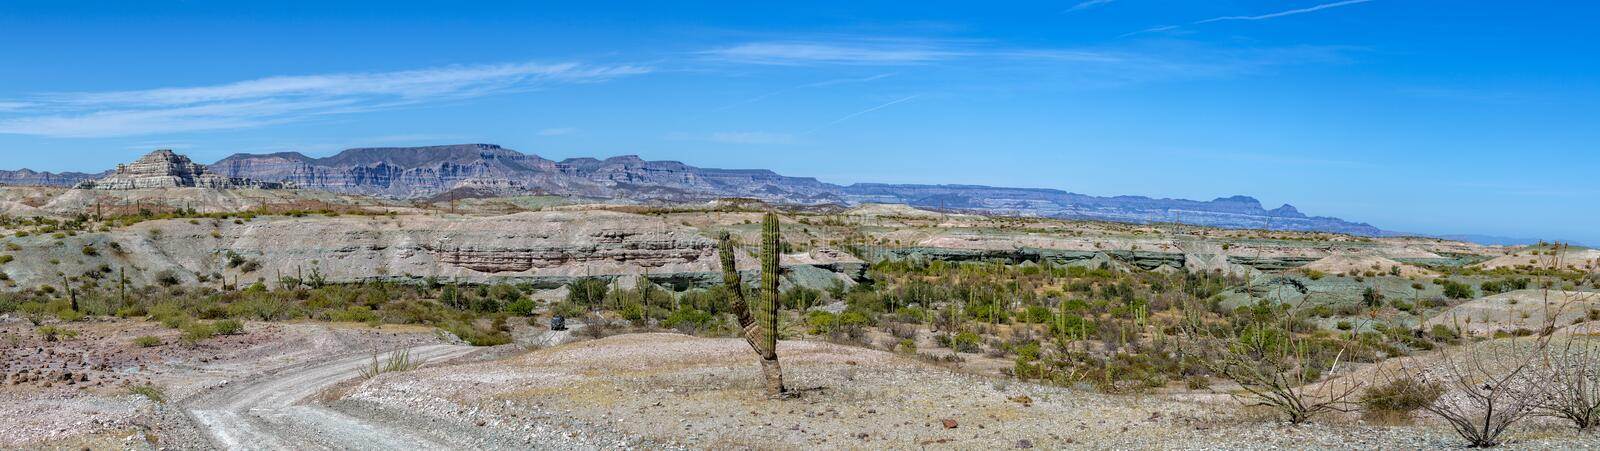 Baja California desert and cortez sea landscape view. Baja California desert and ocean landscape view panorama stock images